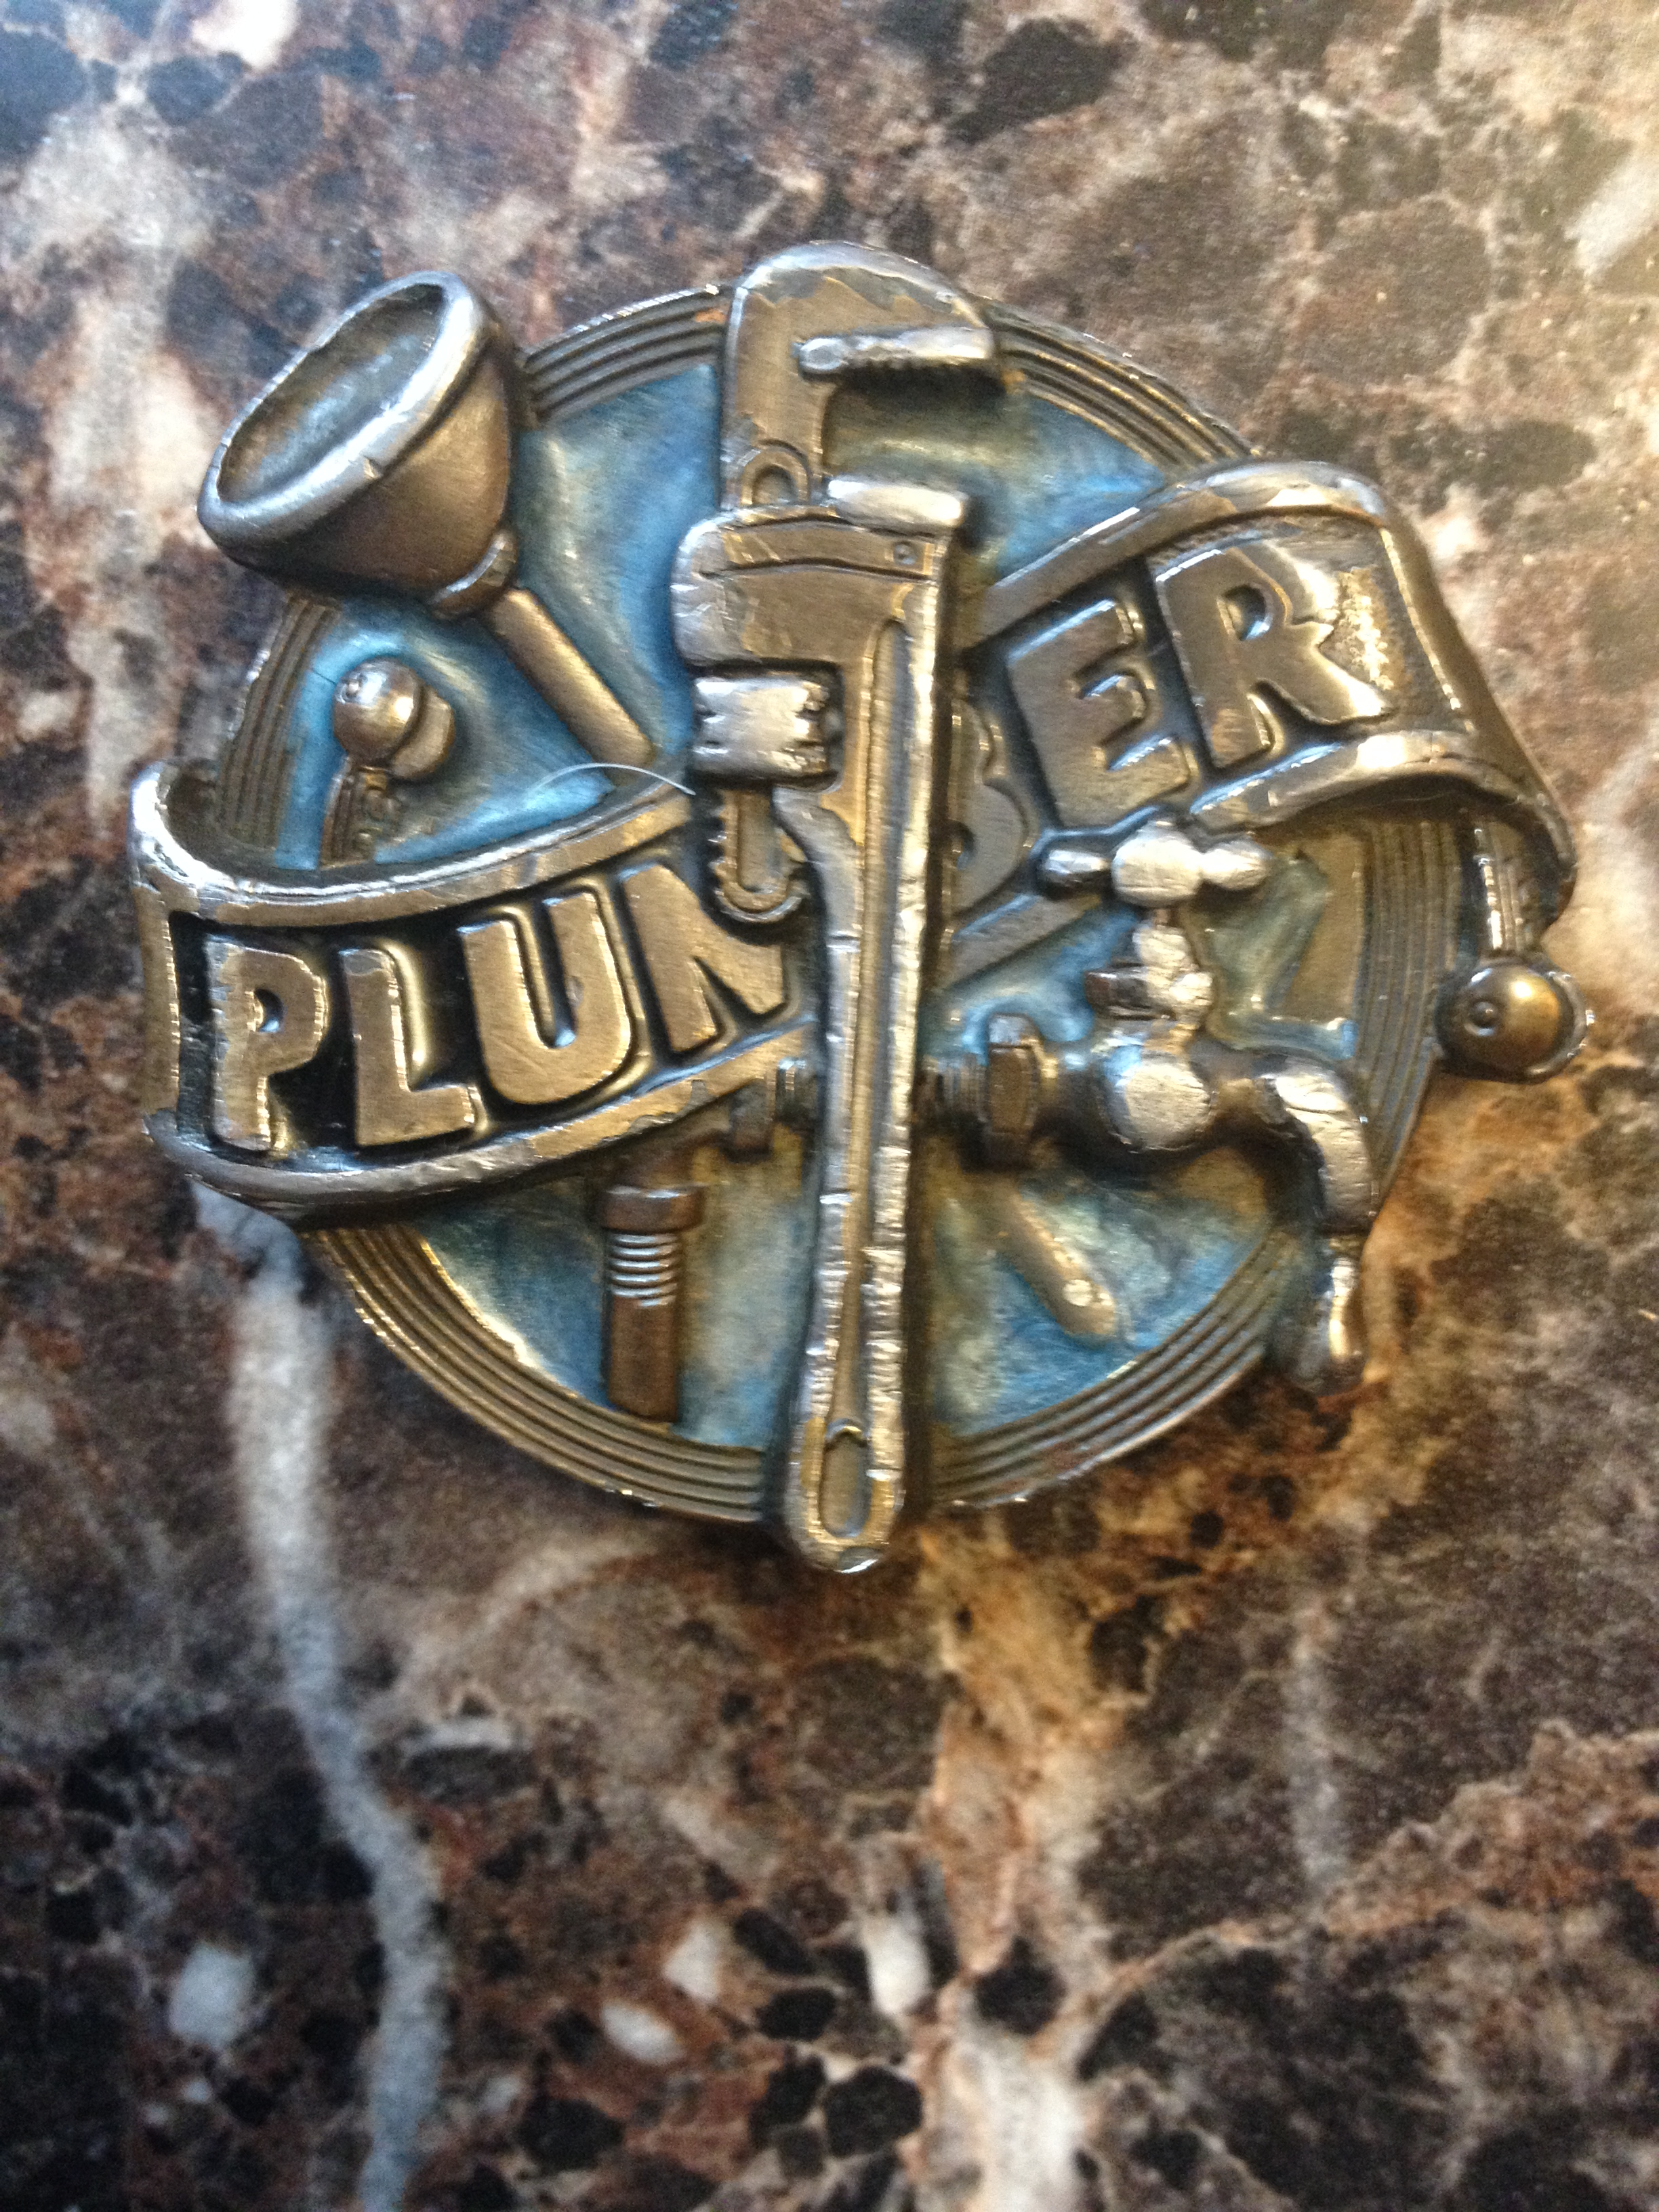 Plumber coin